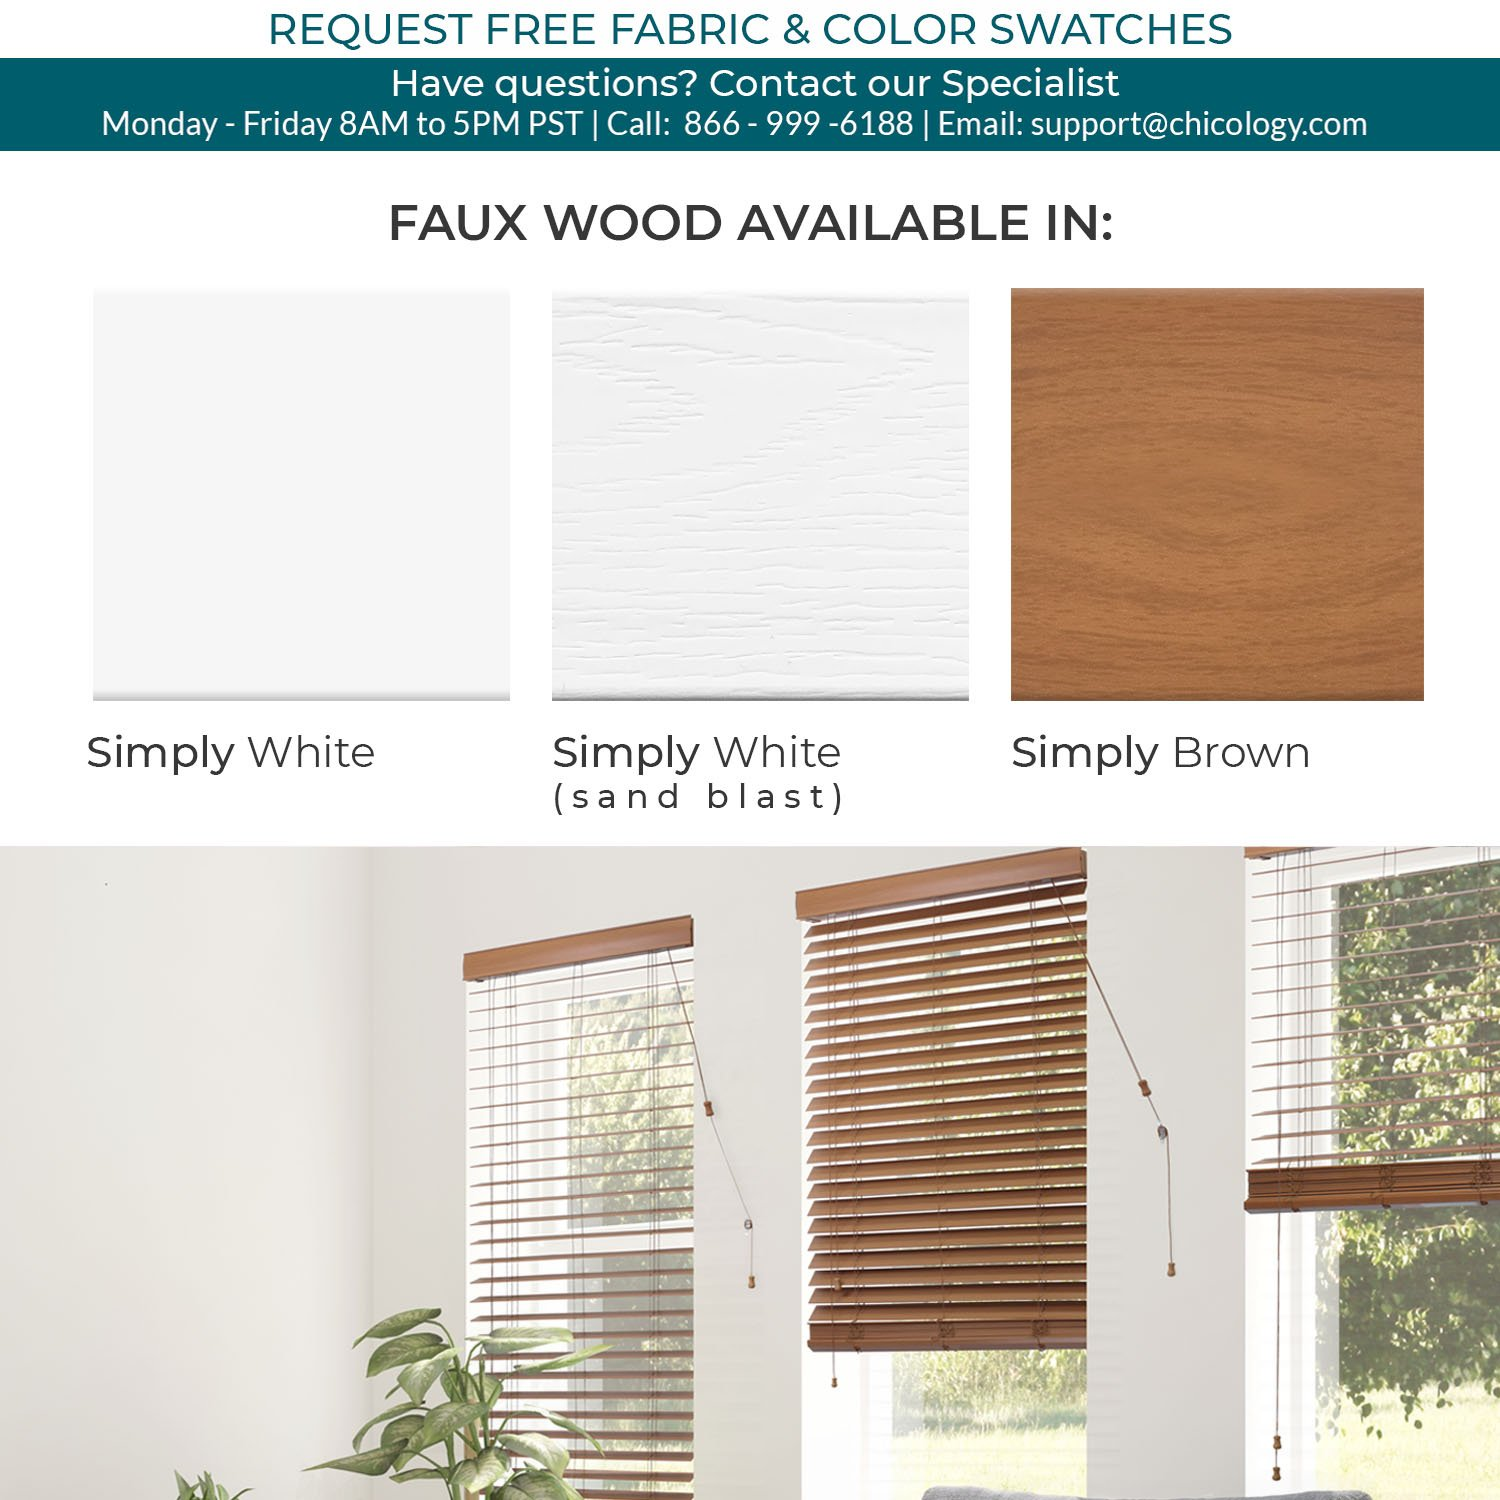 CHICOLOGY Custom-Made 2 in. Faux Wood Blind, Simply Brown, Outside Mount, Right Lift Cord, 27'' W X 36'' H by CHICOLOGY (Image #3)